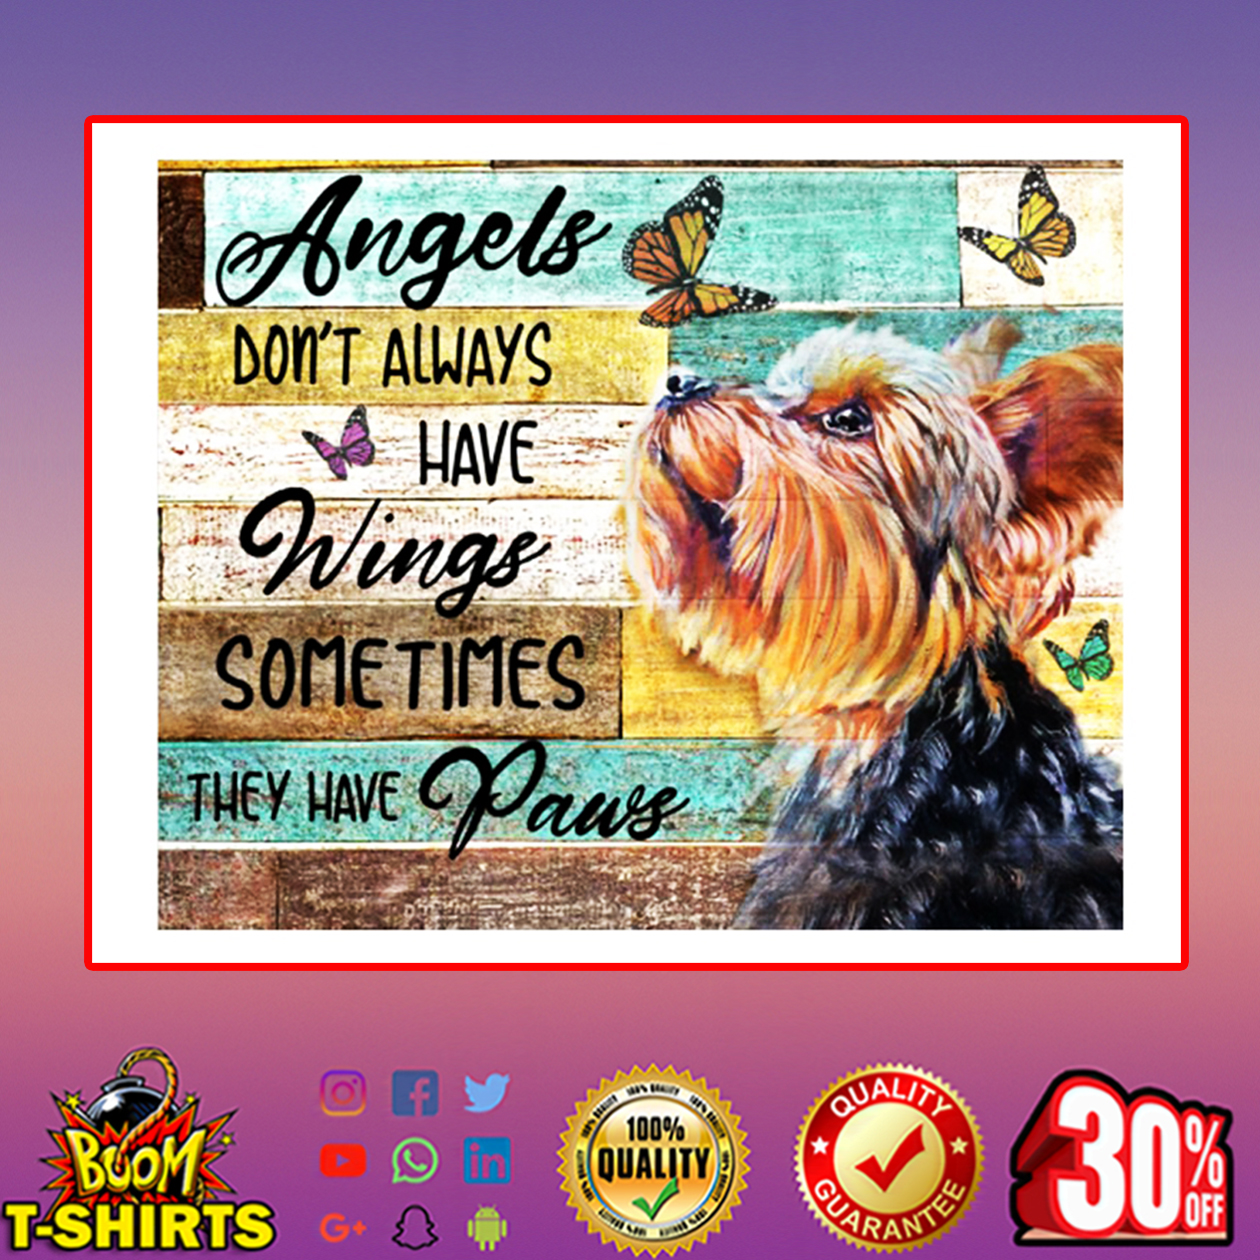 Yorkie Angels don't always have wings sometimes they have paus poster 24x16